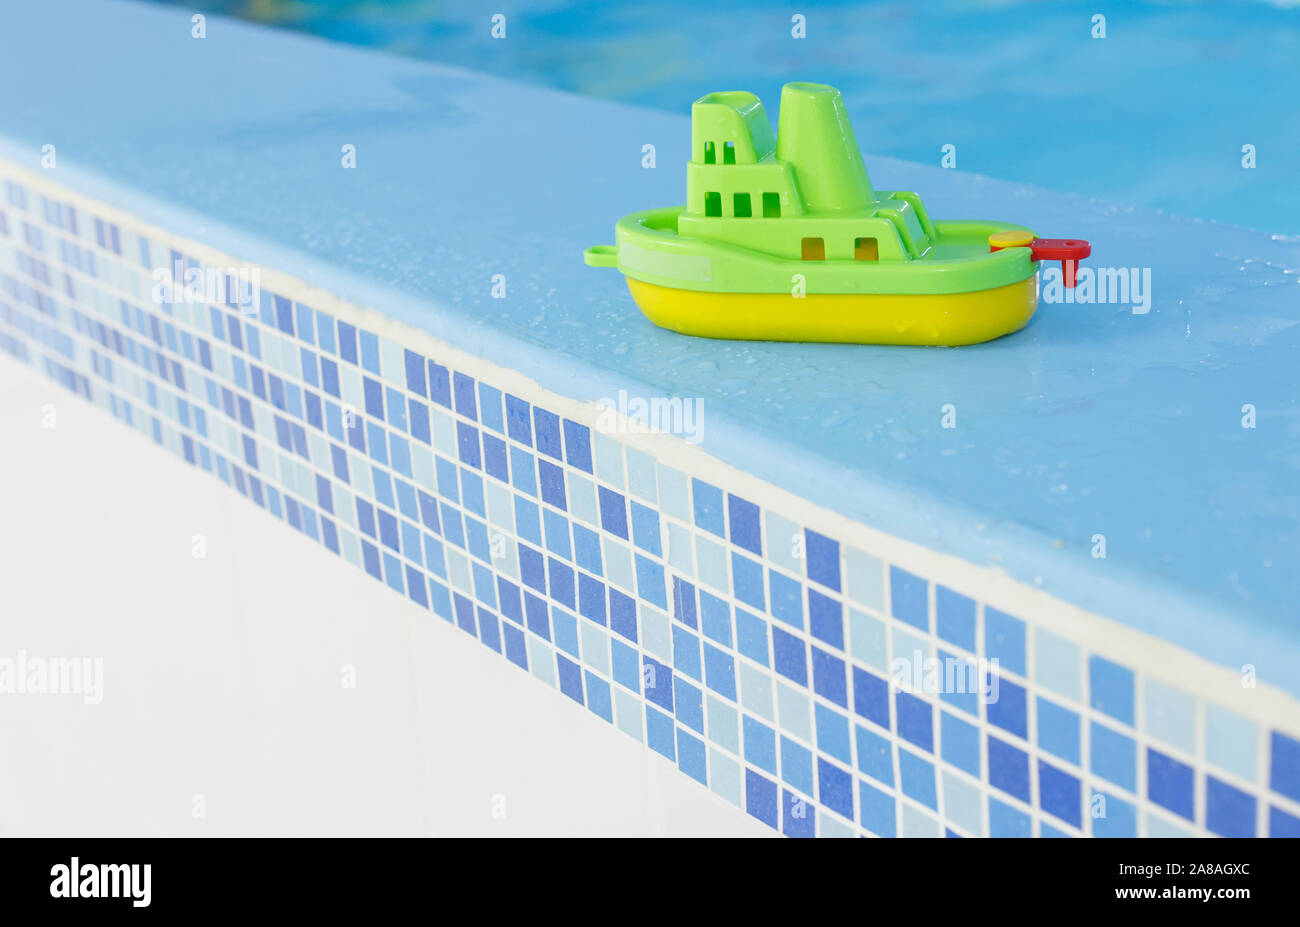 green boat on the side of the pool. Empty indoors public swimming pool. children center Stock Photo